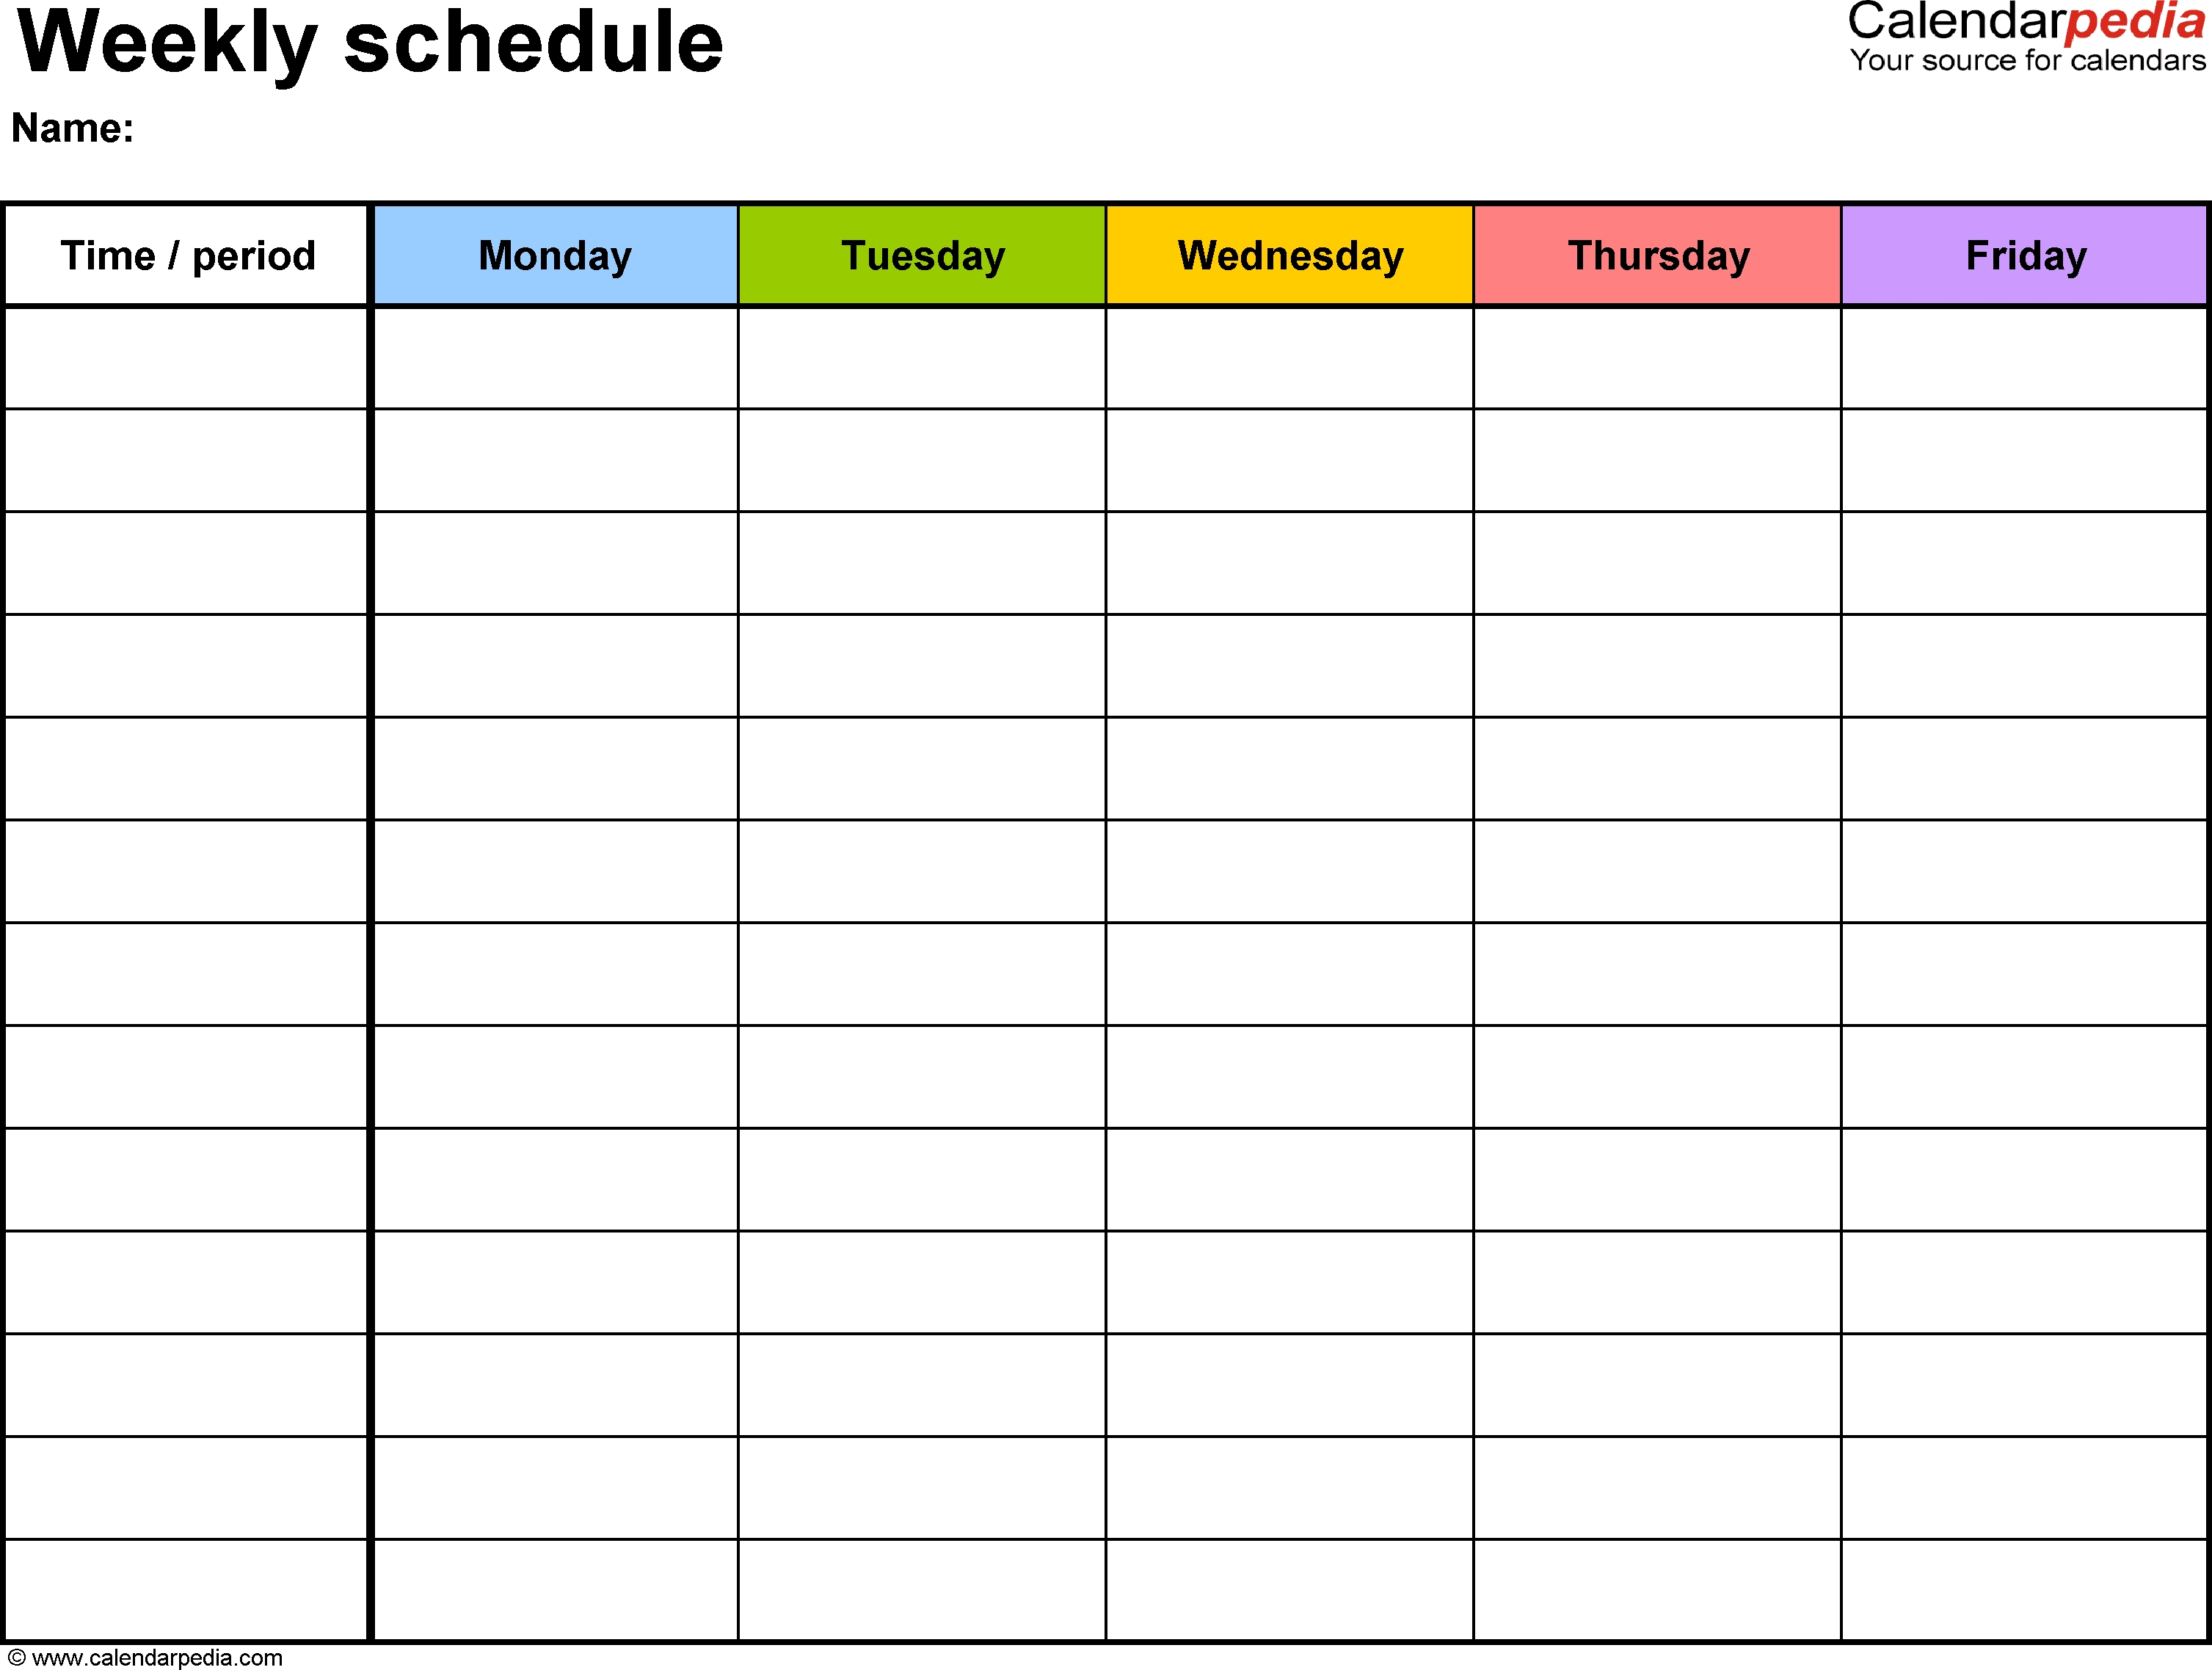 Weekly Schedule Template For Word Version 1: Landscape, 1-Five Day Monthly Calendar For Word